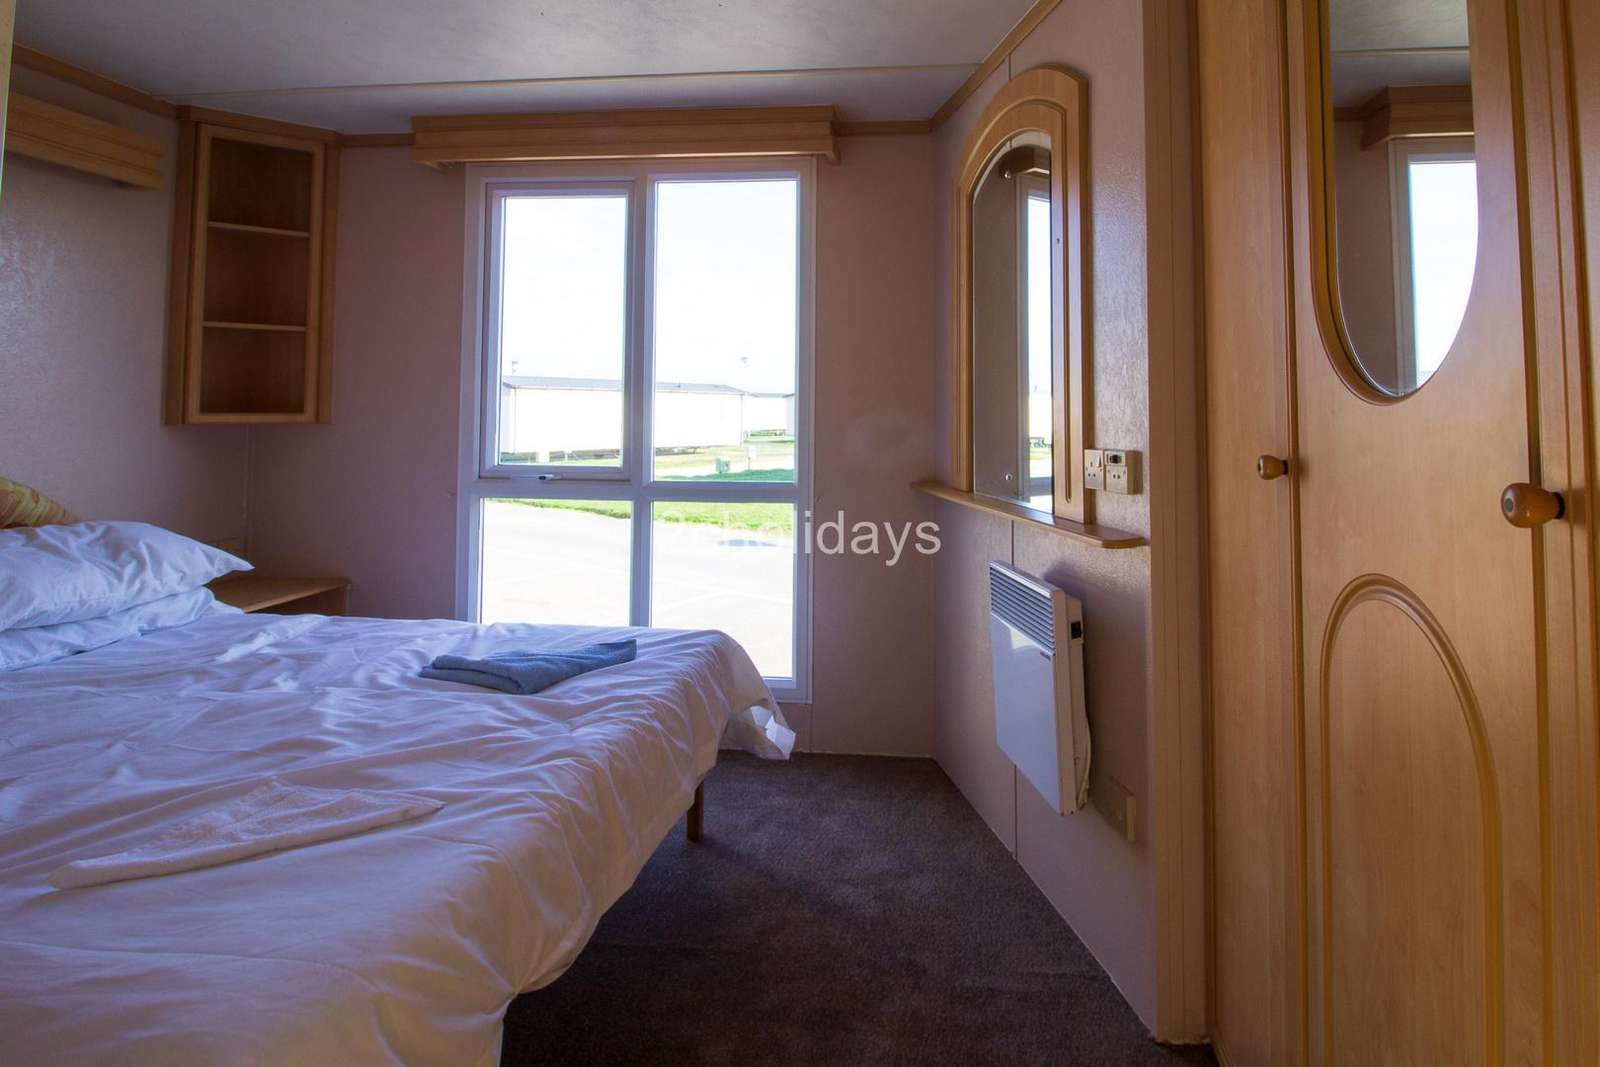 Coastal accommodation in Essex